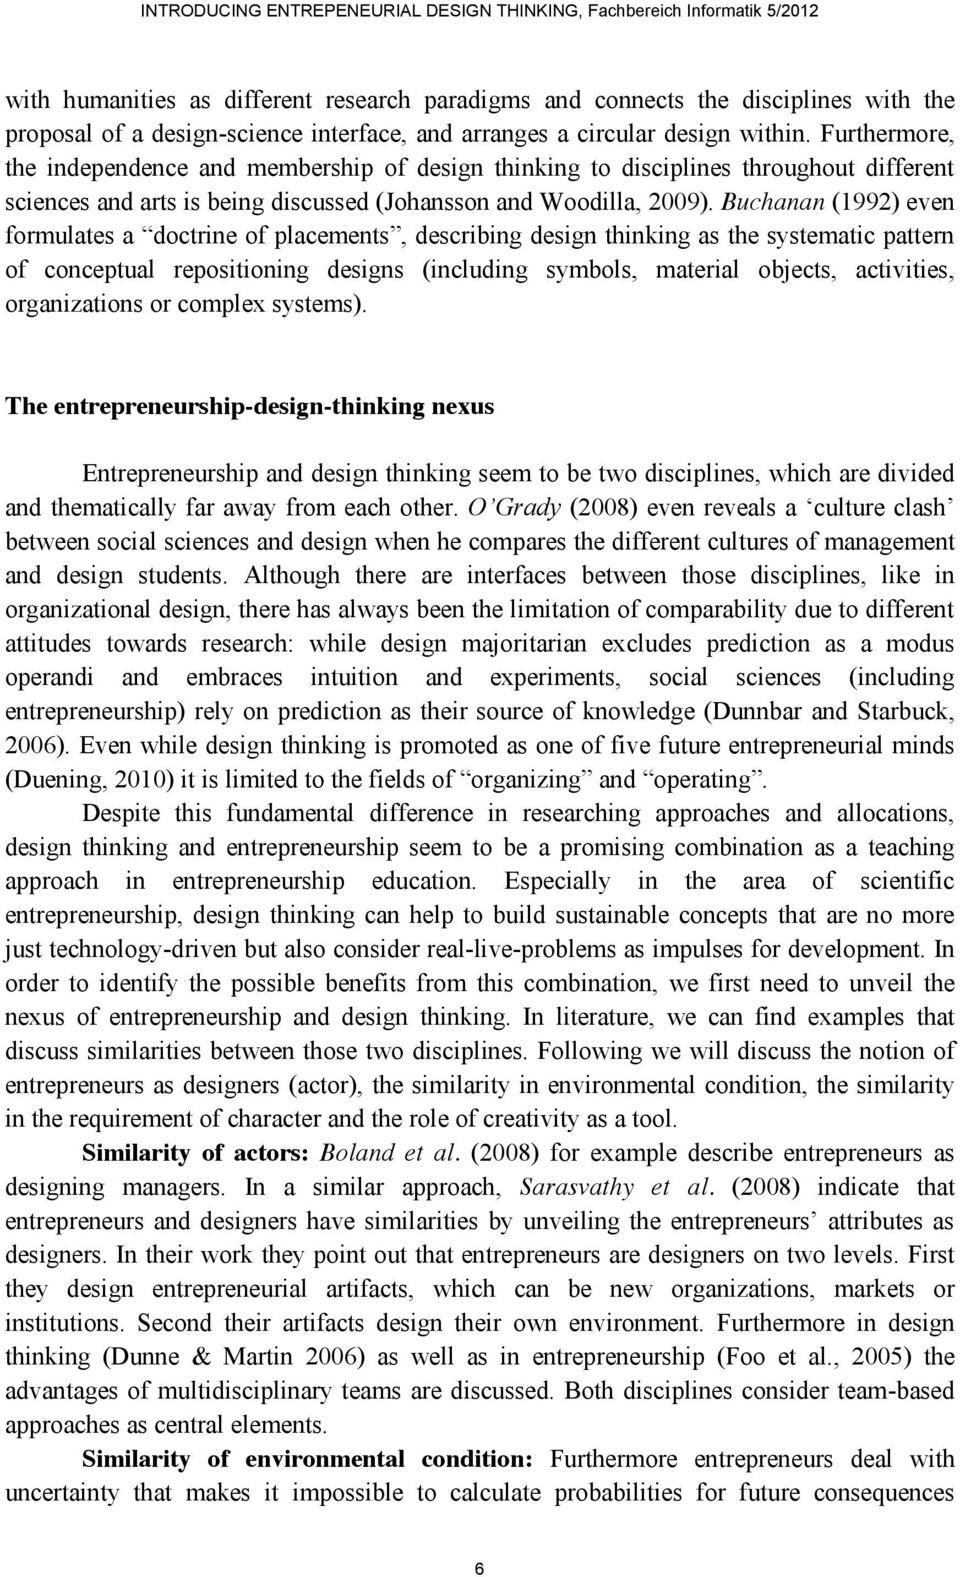 Buchanan (1992) even formulates a doctrine of placements, describing design thinking as the systematic pattern of conceptual repositioning designs (including symbols, material objects, activities,